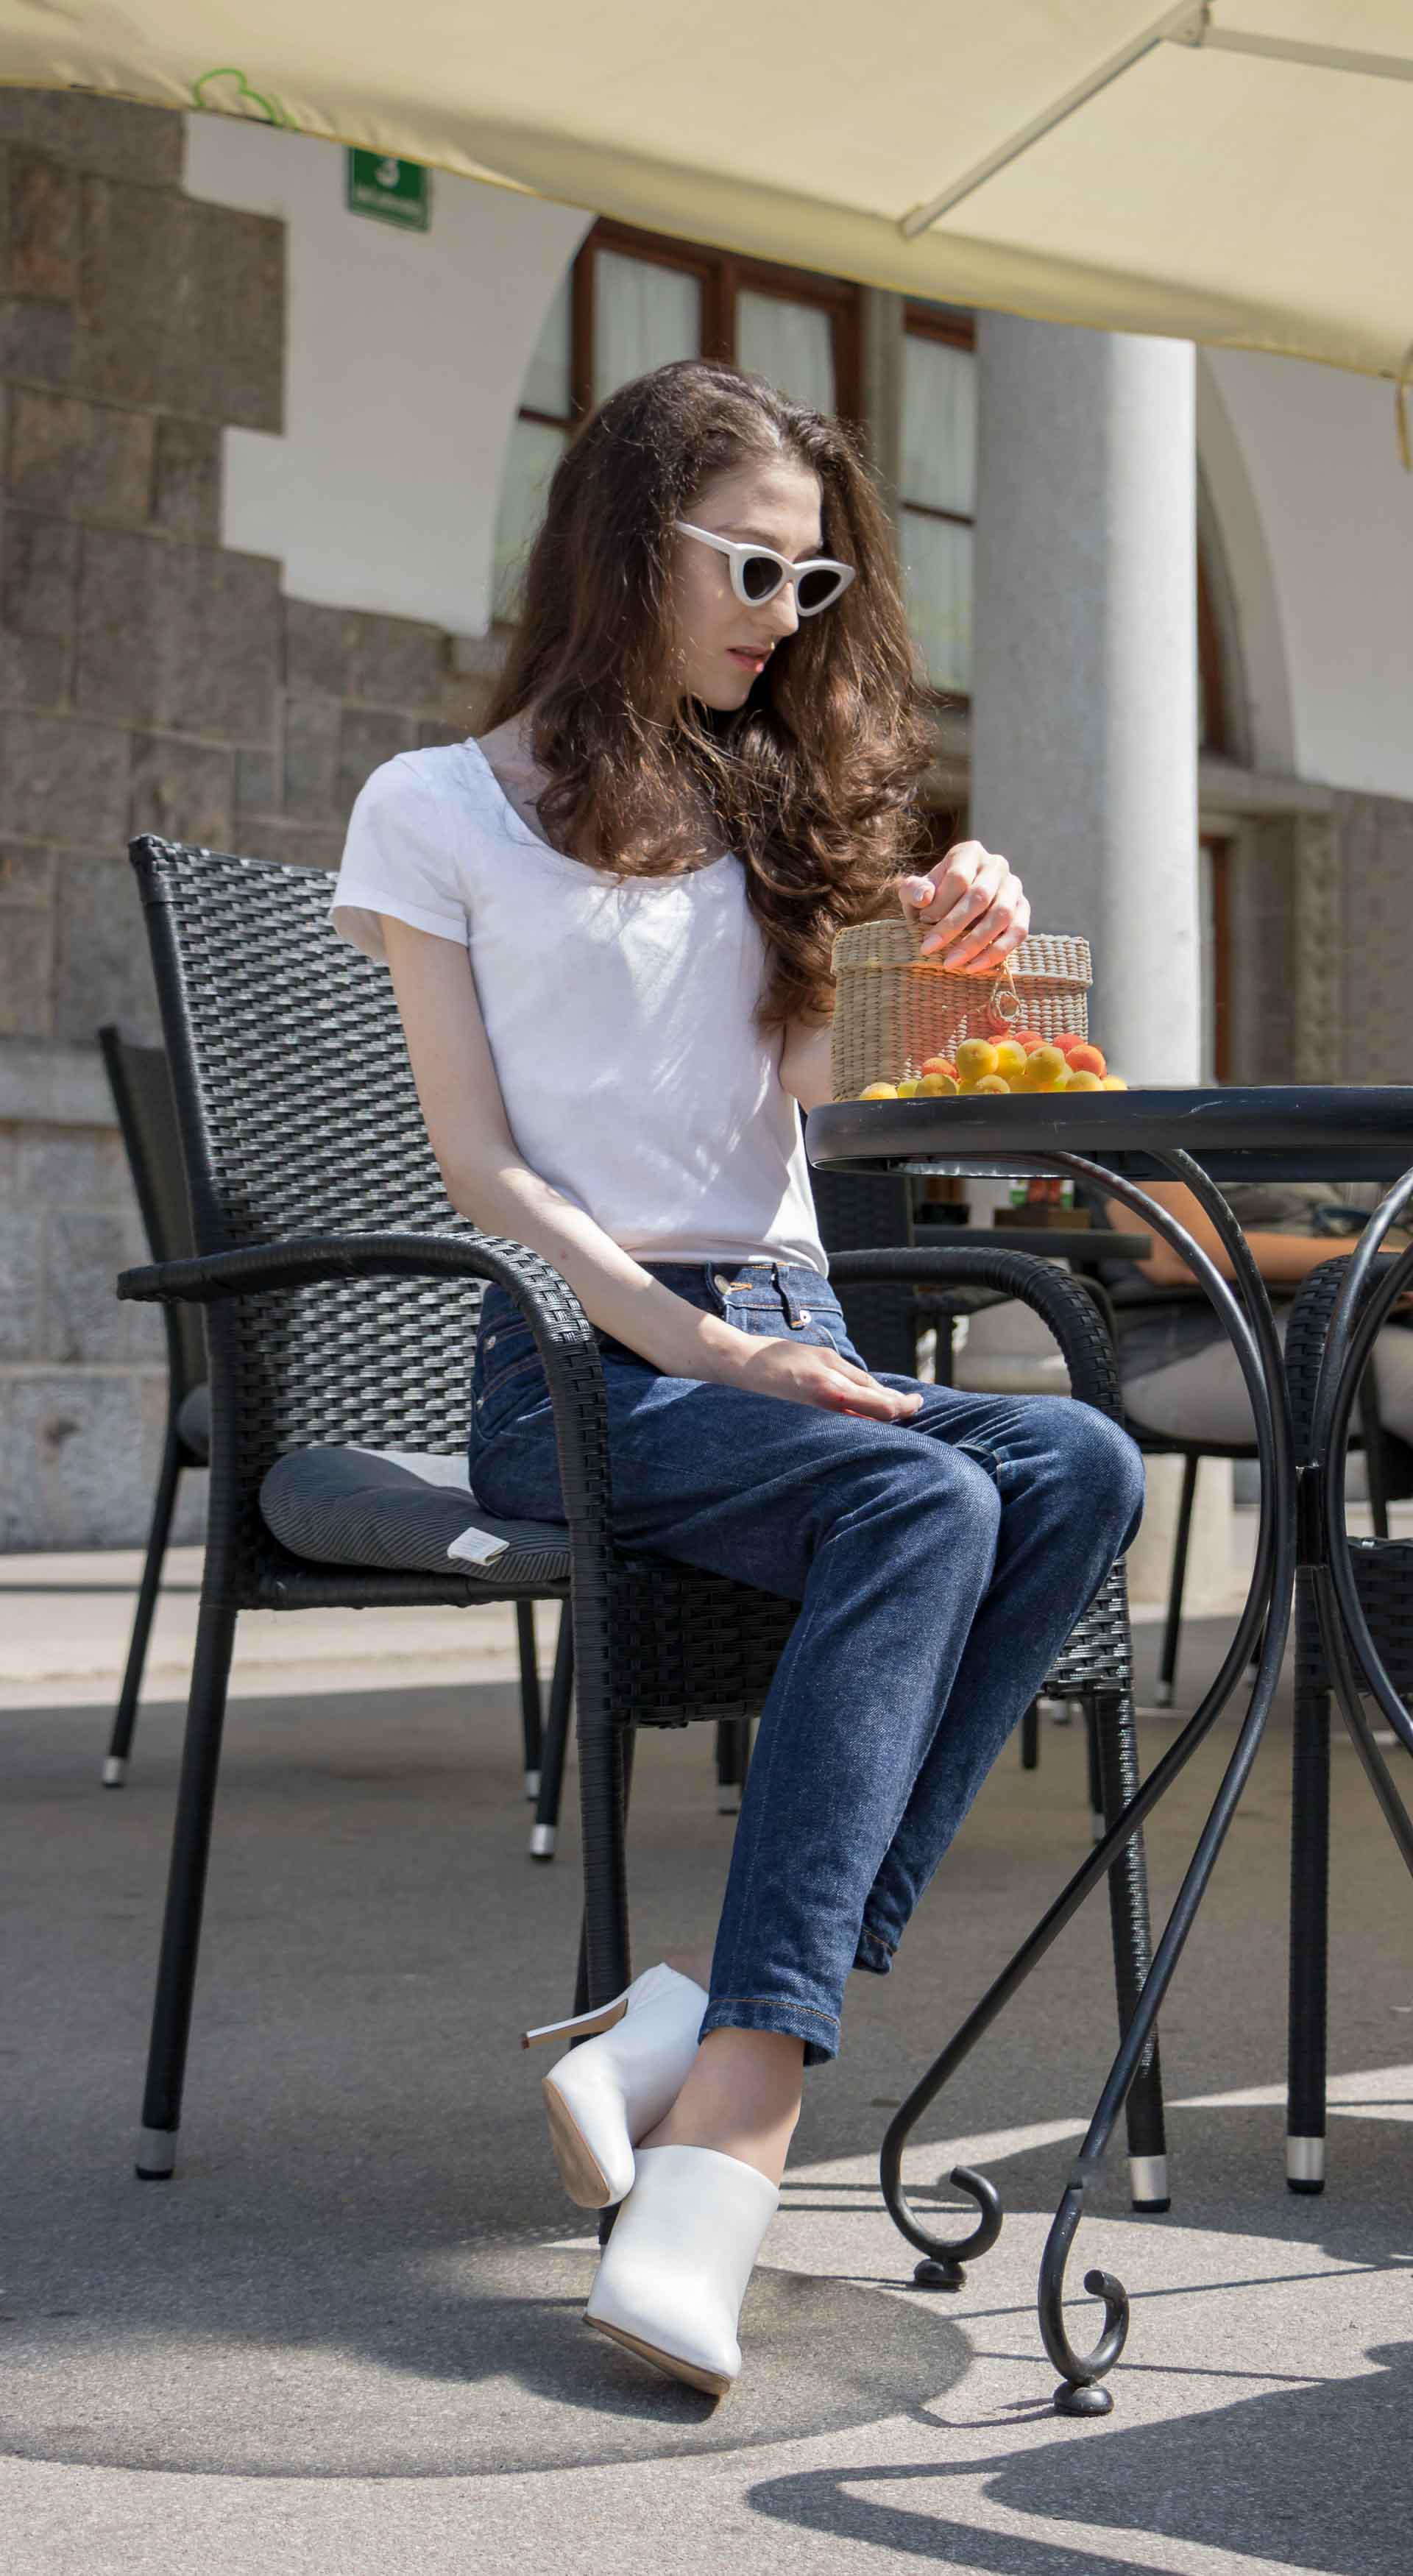 Veronika Lipar Fashion Editor of Brunette from Wall Street wearing basic summer outfit dark blue tapered jeans from A.P.C., H&M white T-shirt, Nannacay basket bag, white mules and Adam Selman x Le Specs white cat eye Lolita sunglasses sitting at the table